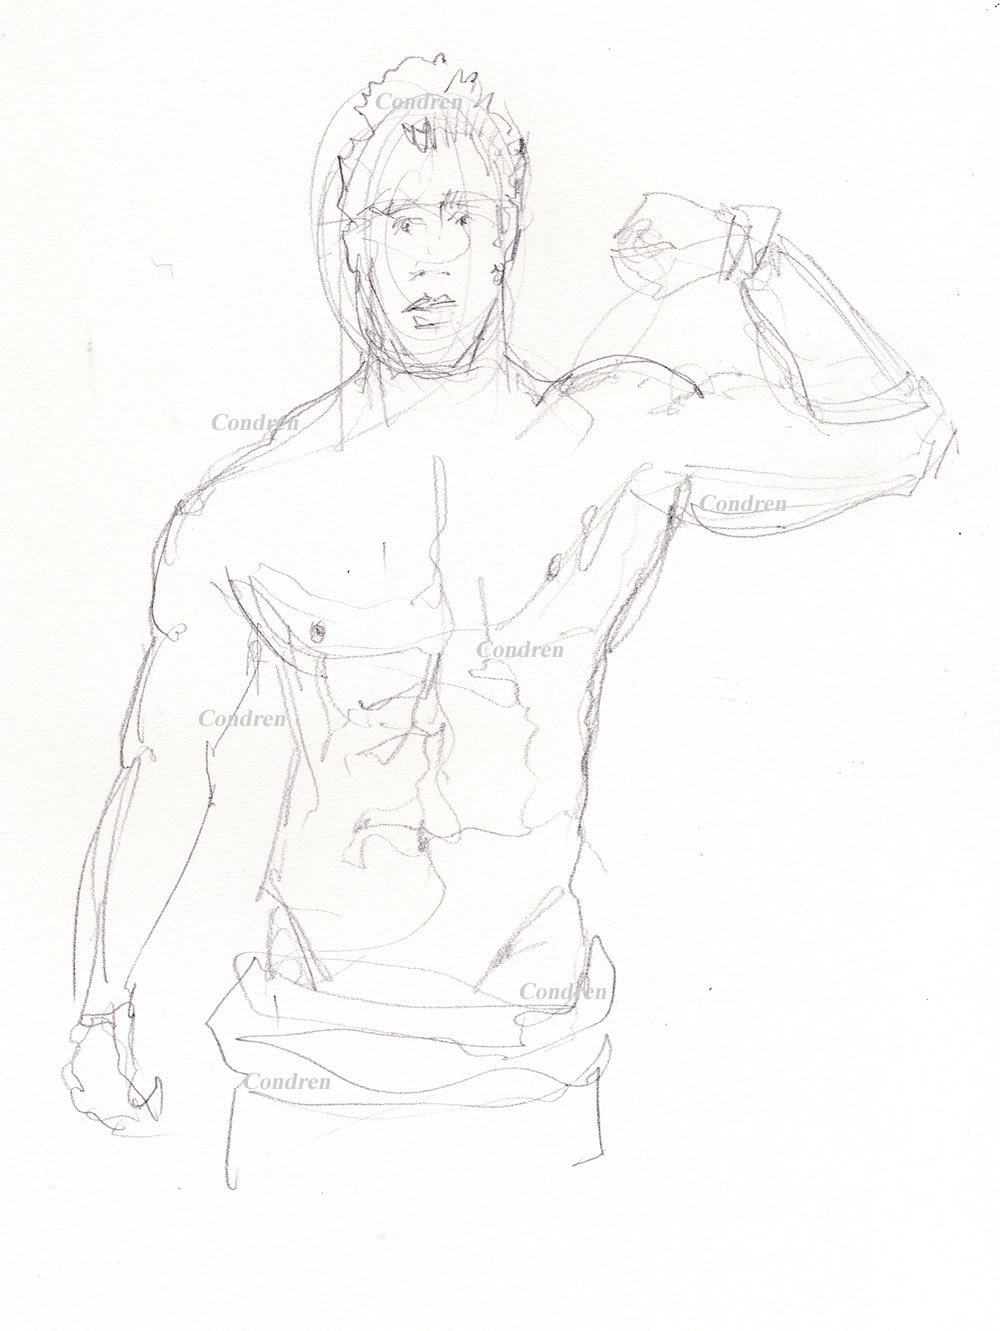 Hot shirtless male #338Z pencil figure drawing by artist Stephen F. Condren with LGBTQ honored gay prints, and scans.